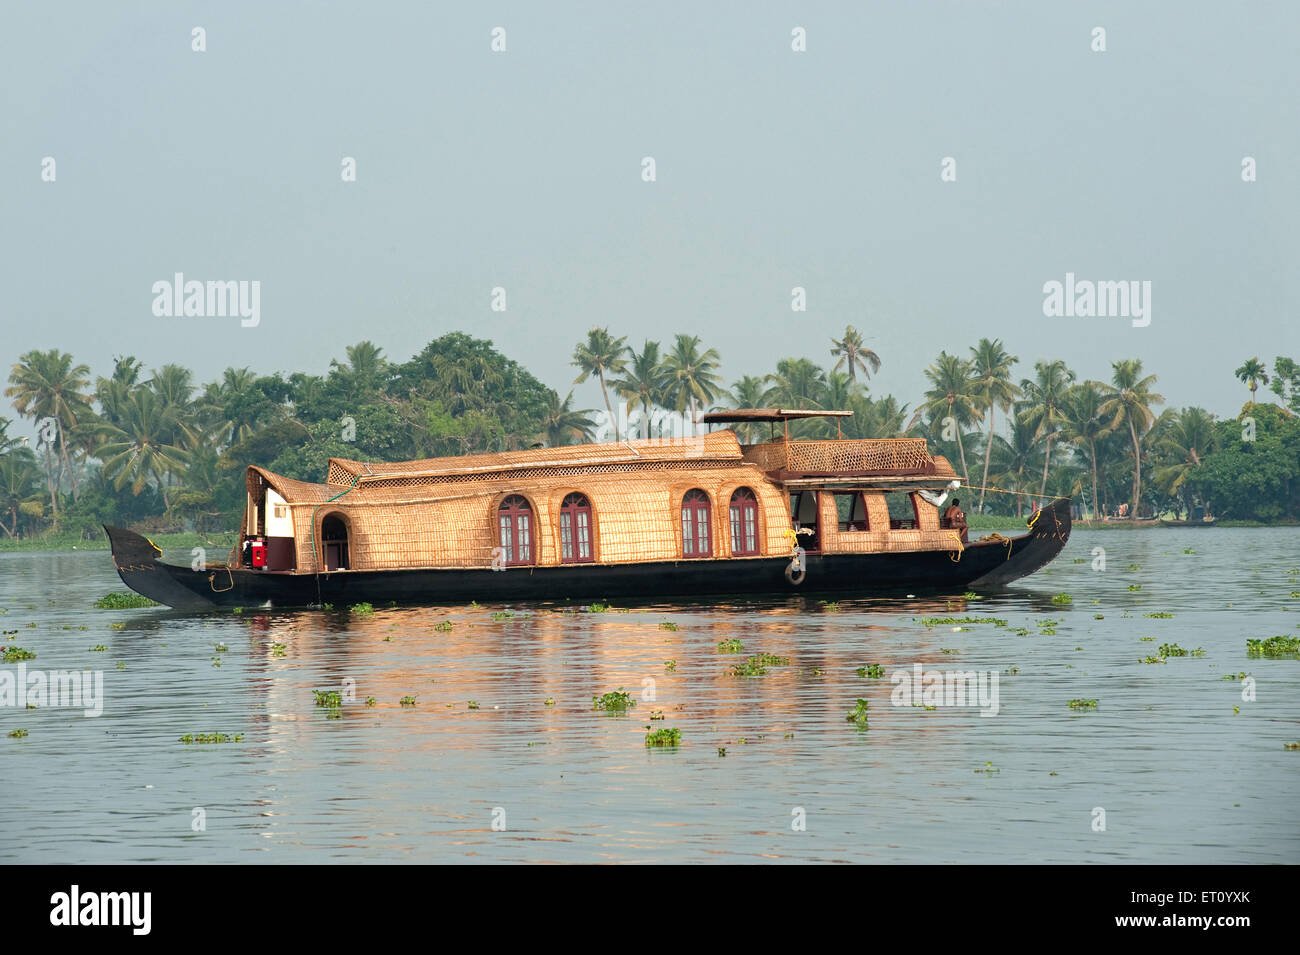 Kettuvallam converted in houseboat in backwaters ; Alleppey Alappuzha ; Kerala ; India 2010 - Stock Image